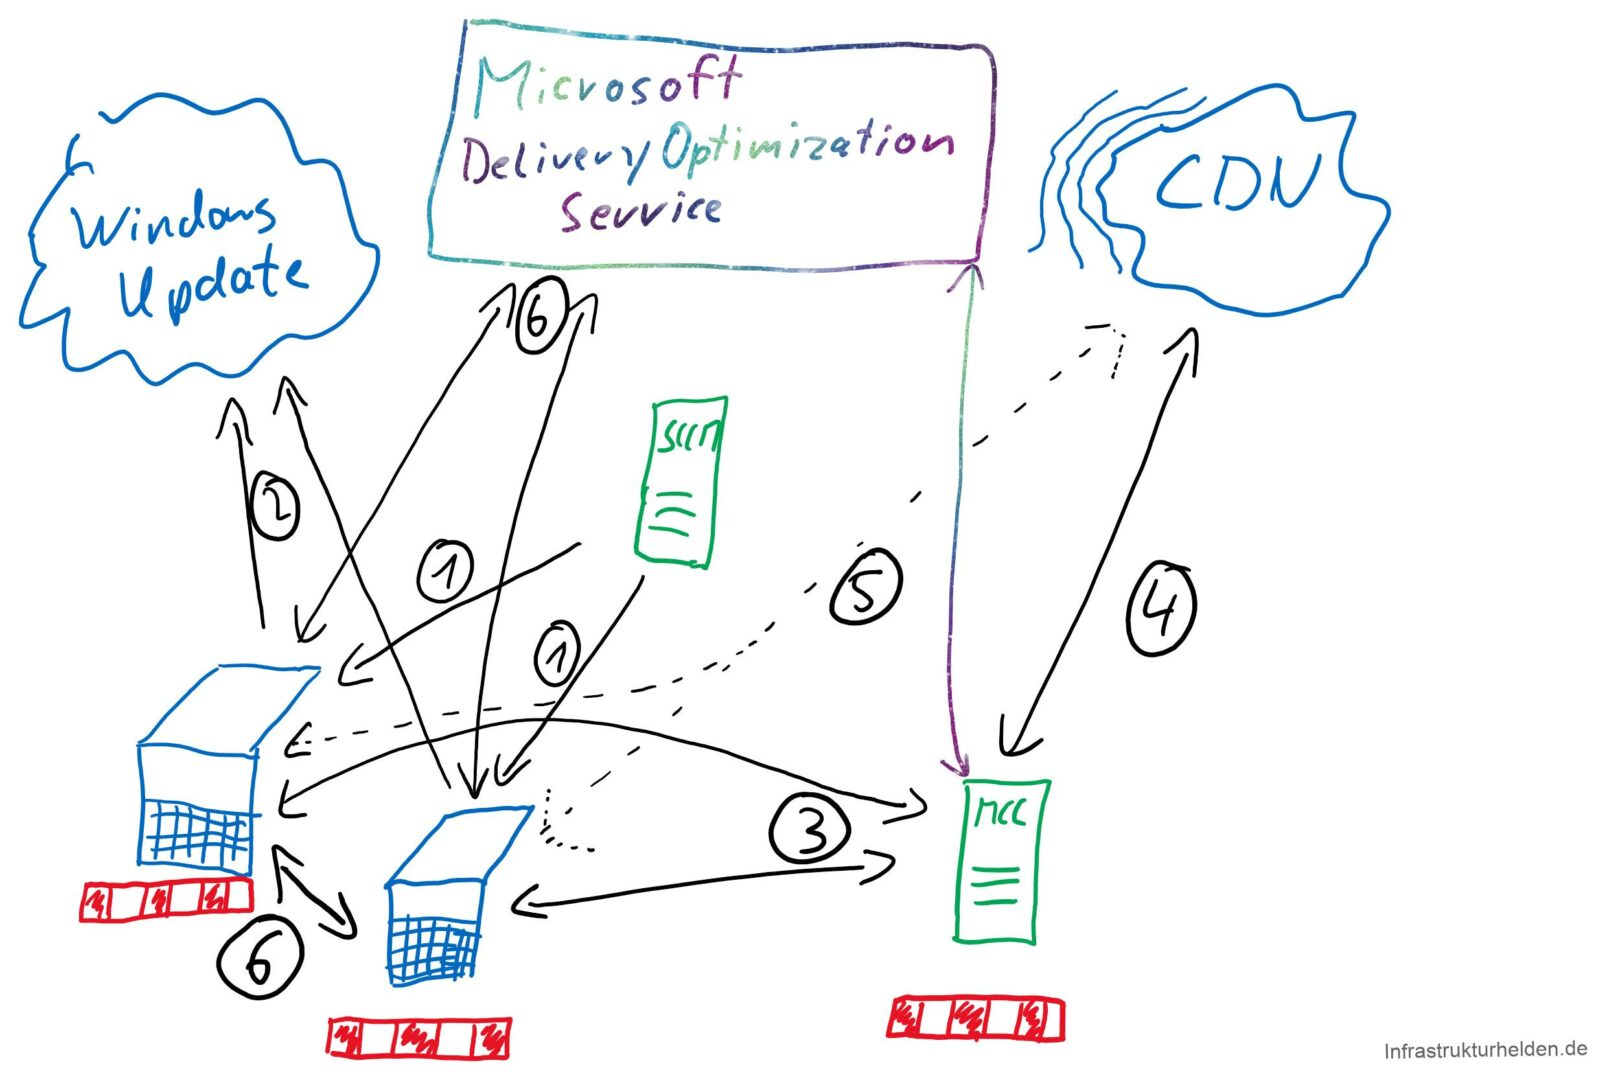 How does the Connected Cache work? The clients are configured by SCCM for Connected Cache and Deliver Optimization. This includes the Cache Server. In the future this can also happen with Group Policy or DHCP option. More about this later.  The clients check for Windows updates and get back the CDN URL of the download.  The clients check if the Cache Server already has the information.   If the server does not have the information, it gets the missing parts from the Microsoft CDN  If the cache server is not available, the clients get the data directly from the CDN  Since the data is now in the Connected Cache and also in the peer cache of the clients, other clients can obtain the data directly via Delivery Optimization.